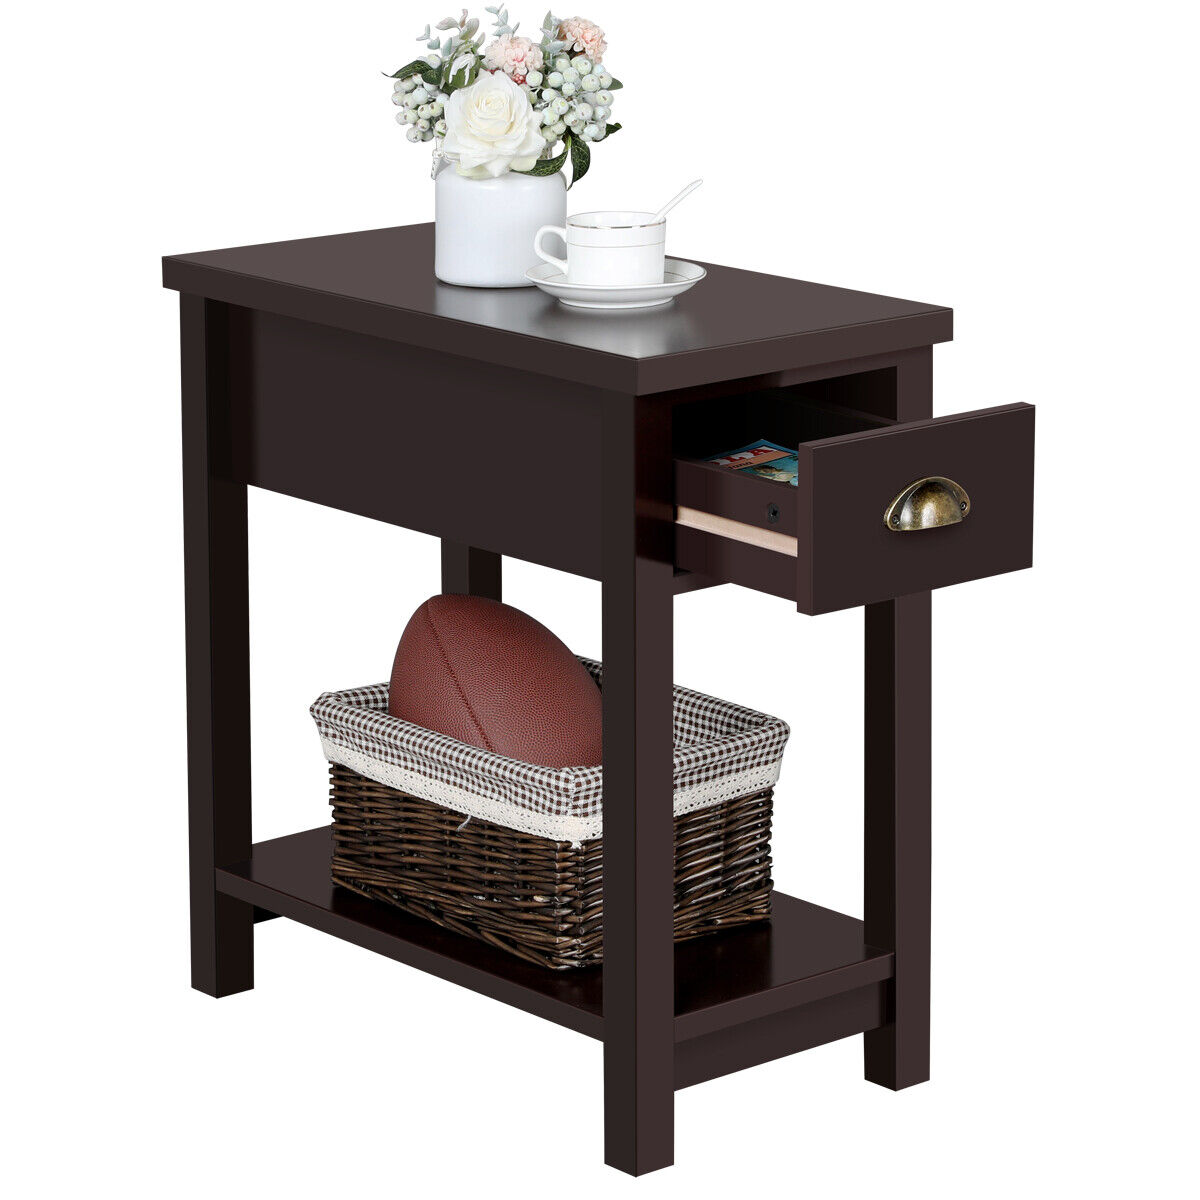 Picture of: End Tables Living Room Bedroom Narrow Wood Sofa Couch Side Table Small Modern Ebay